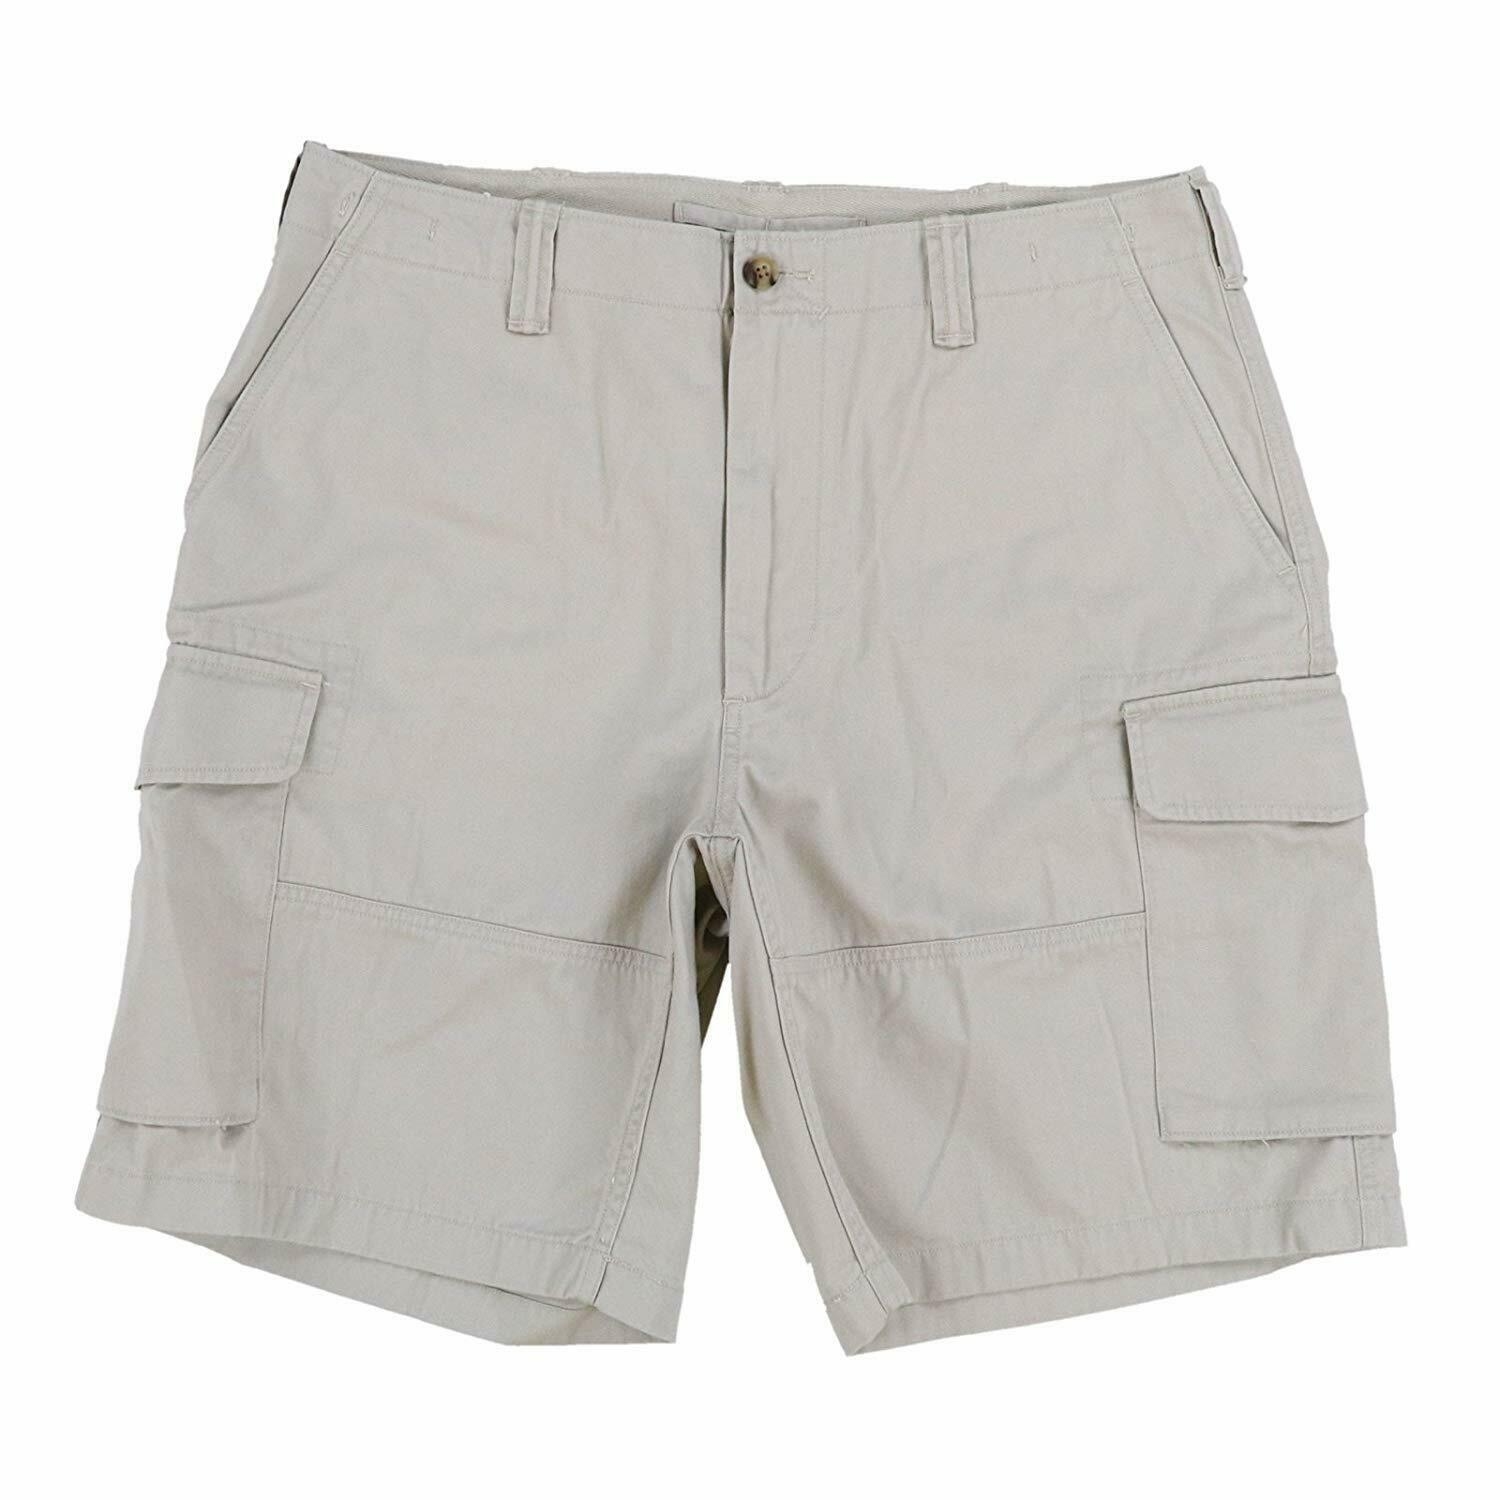 Polo Ralph Lauren Mens Relaxed Fit Cargo Shorts 32 36 Beige new nwt - $68.99